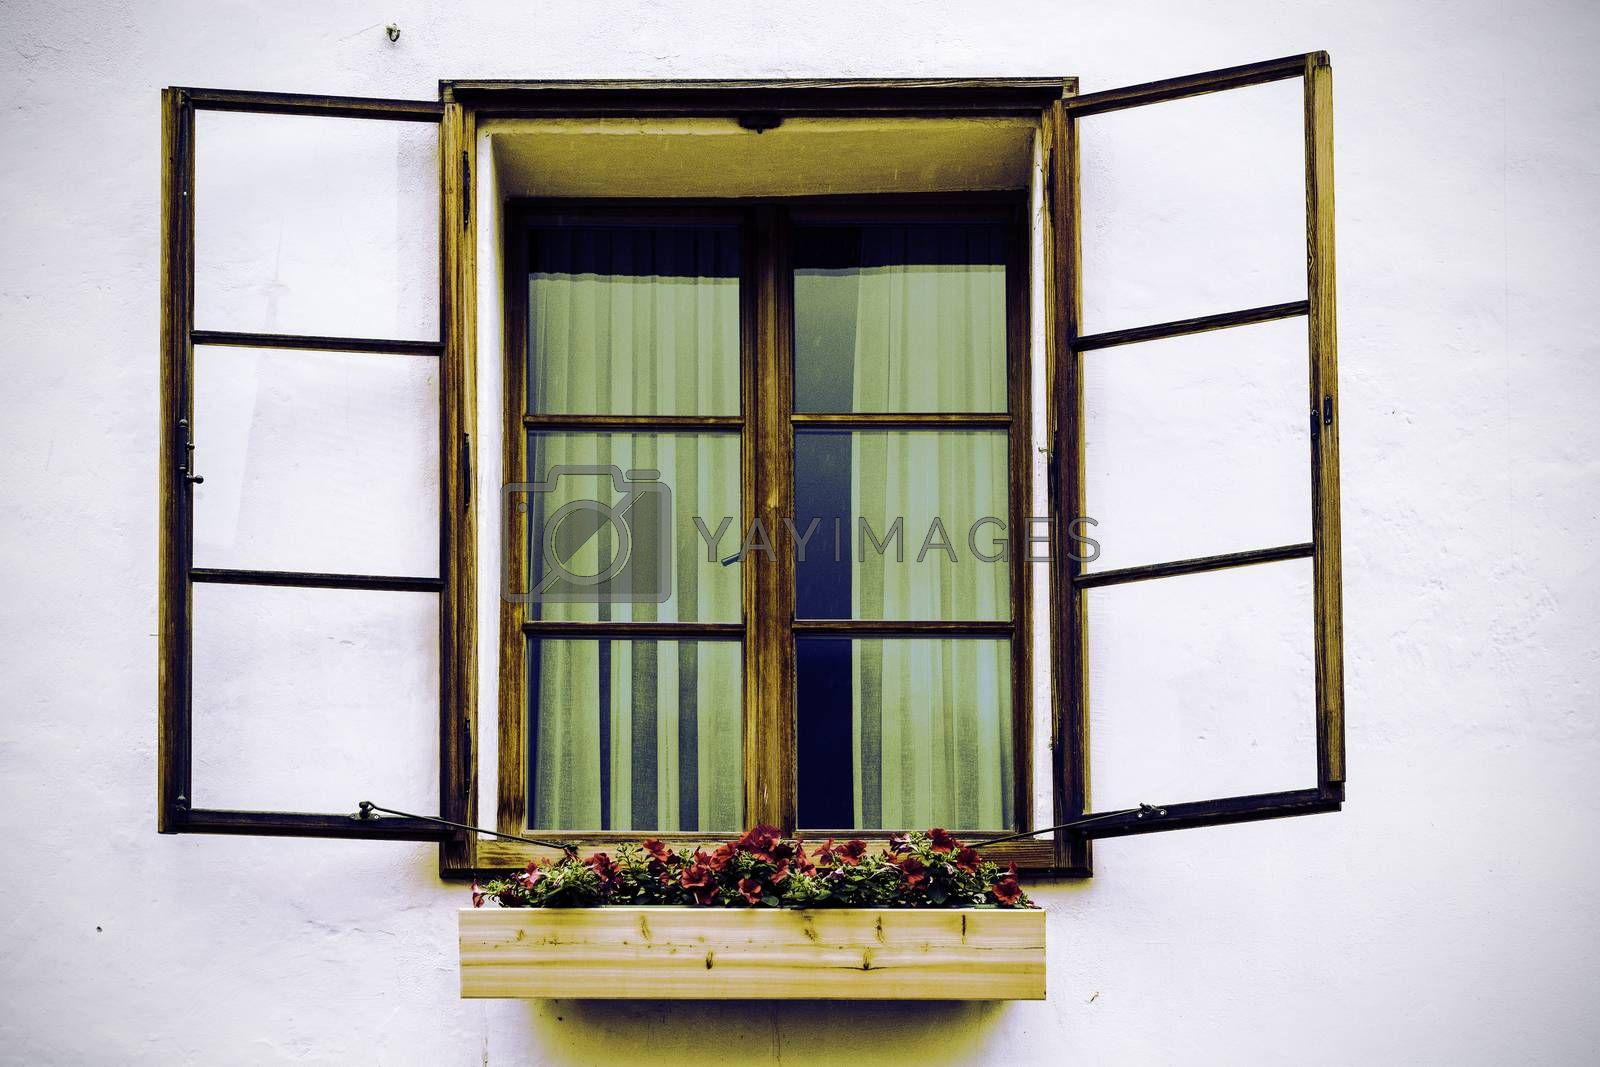 Typical window of a house in a small town in Austria. Home in the Austrian city of Hallstatt on a rainy day. Vintage style